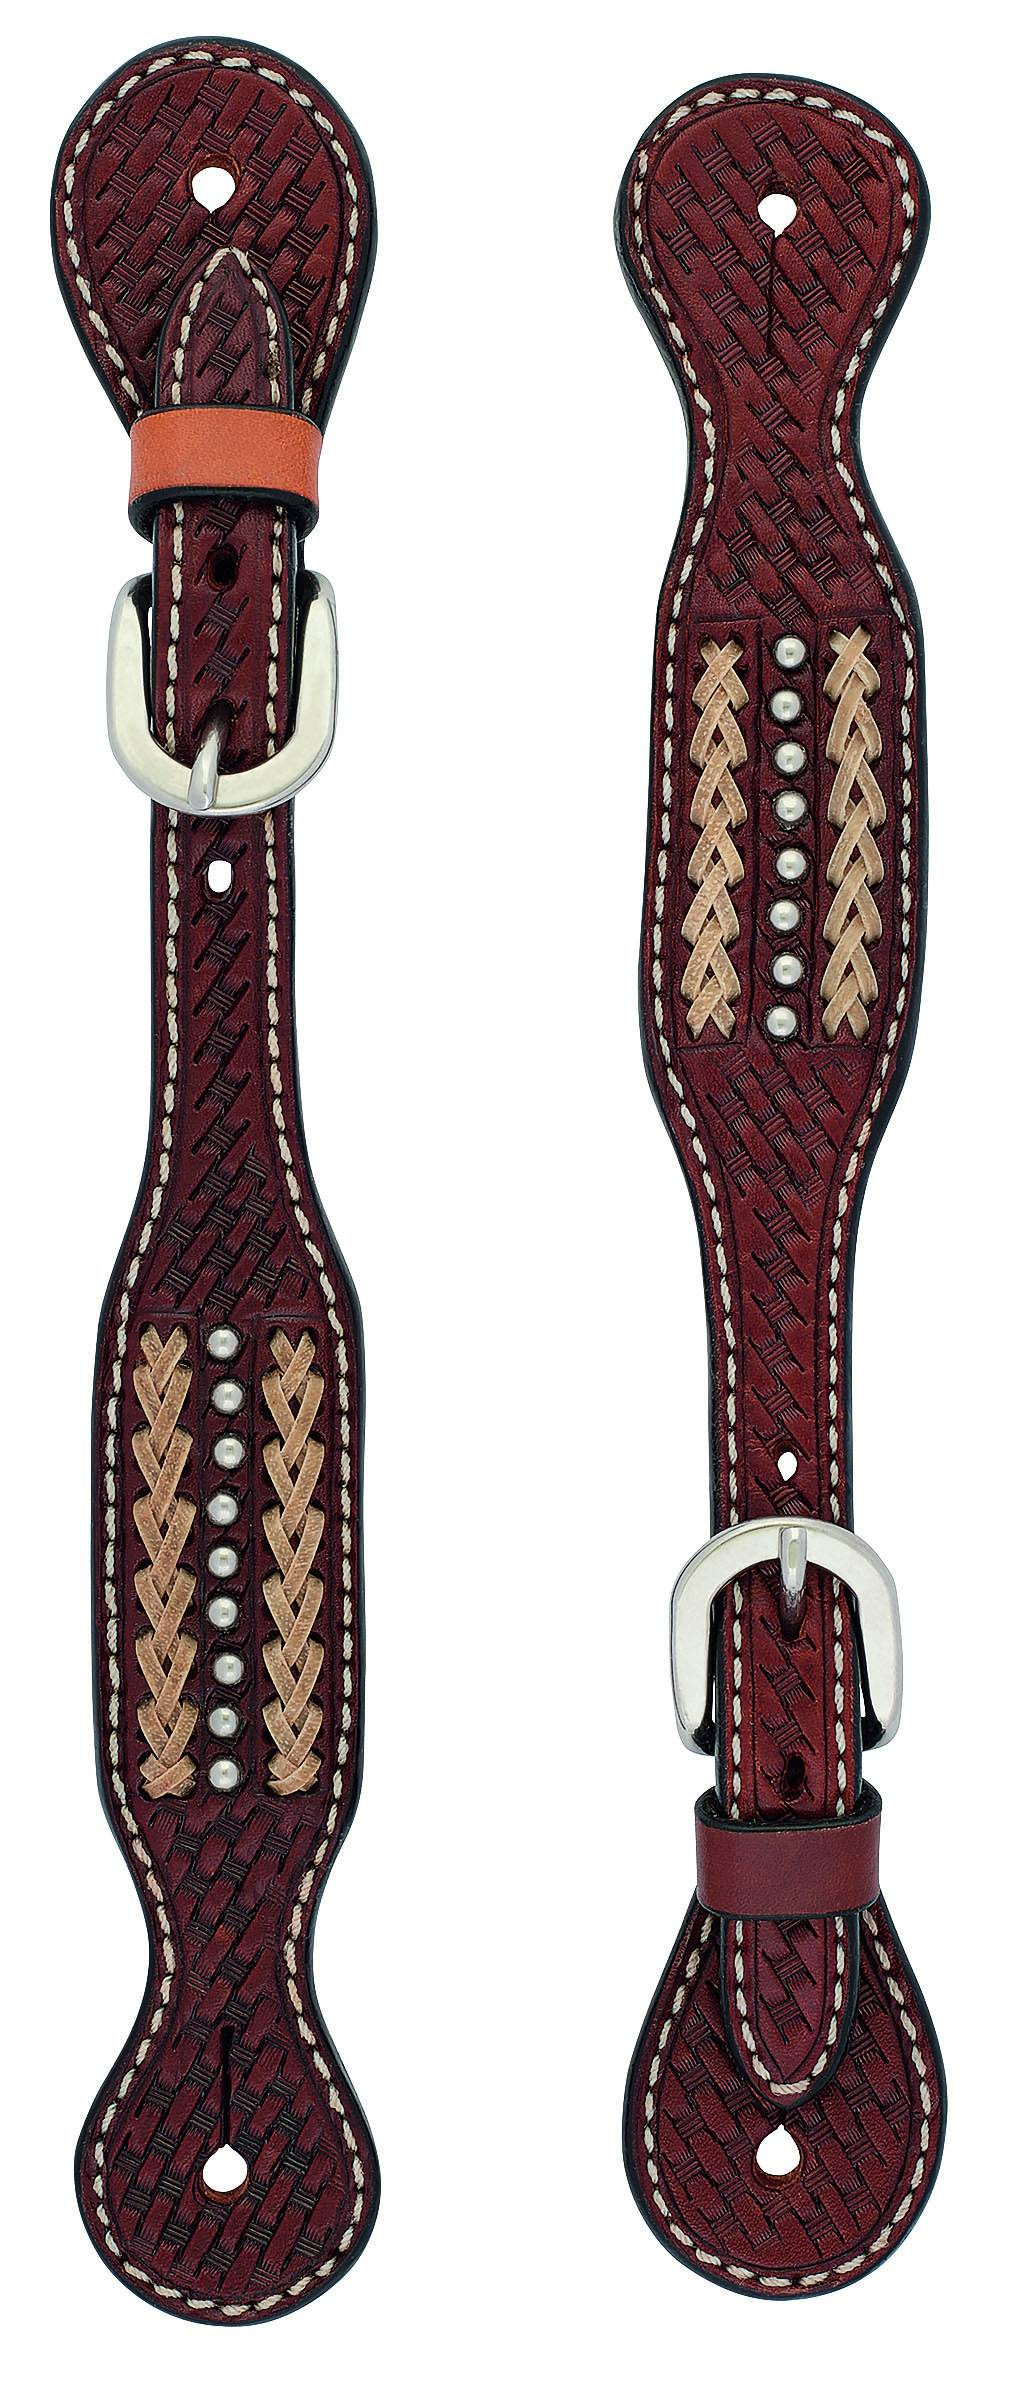 Weaver Cross Basketweave Rawhide Accent Spur Straps - Ladies